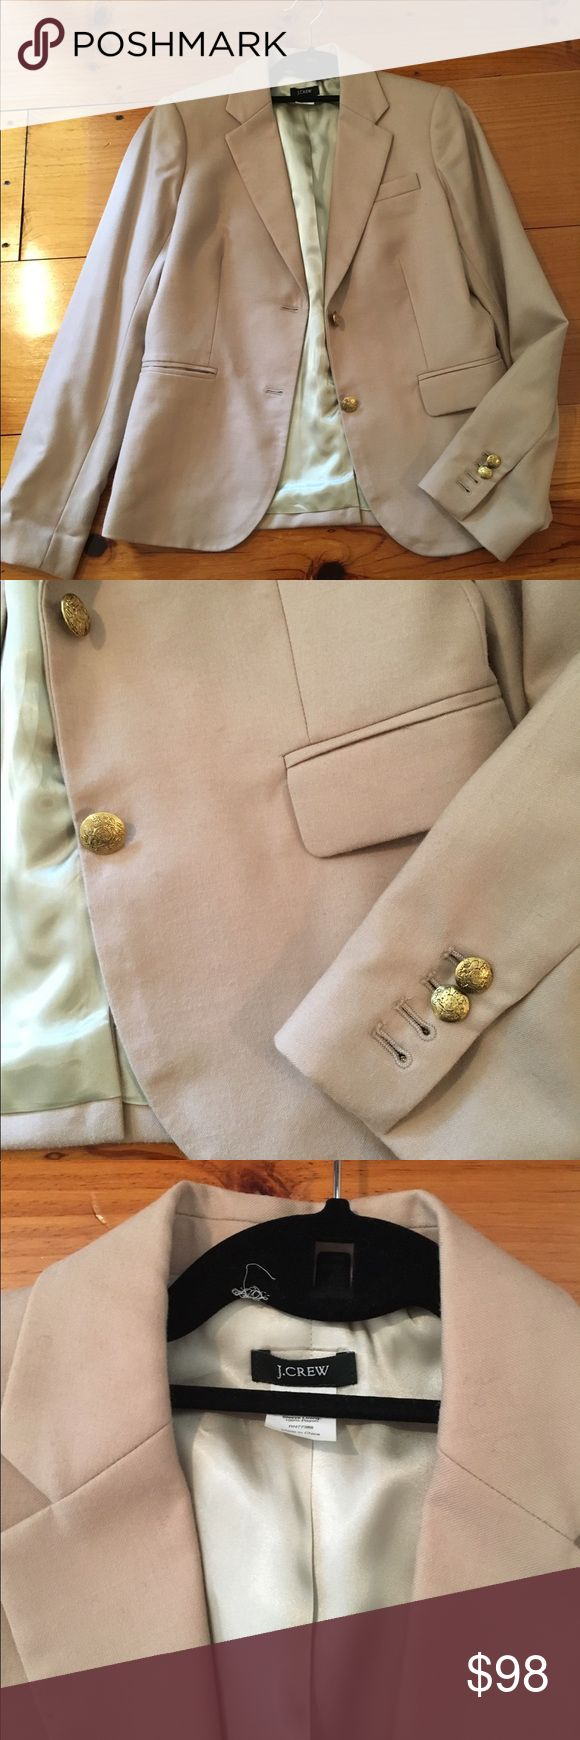 J.Crew Wool Schoolboy Blazer One of a kind color in 100% Wool, iconic J.Crew silhouette and finishing touches. Two button closure and functional buttons at on sleeves. Color is a tawny beige with light pink undertone. Excellent condition! J. Crew Jackets & Coats Blazers